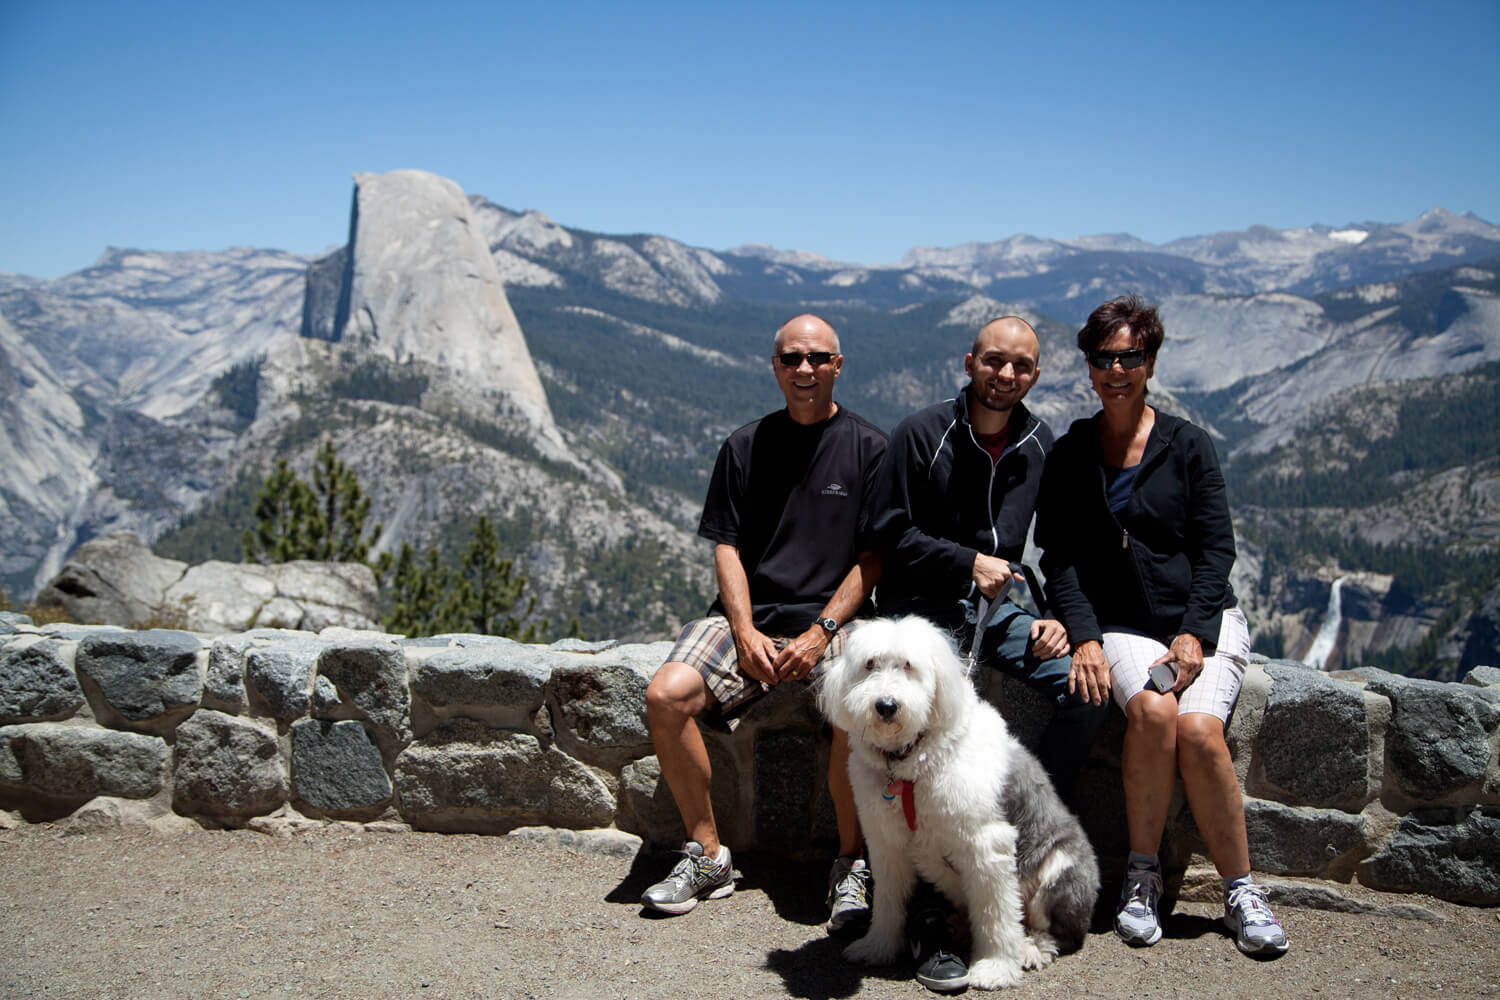 Glacier Point with Charlie, CharlieDog, Terry, Half Dome, Nevada Falls and me! Our  16th  park visit.